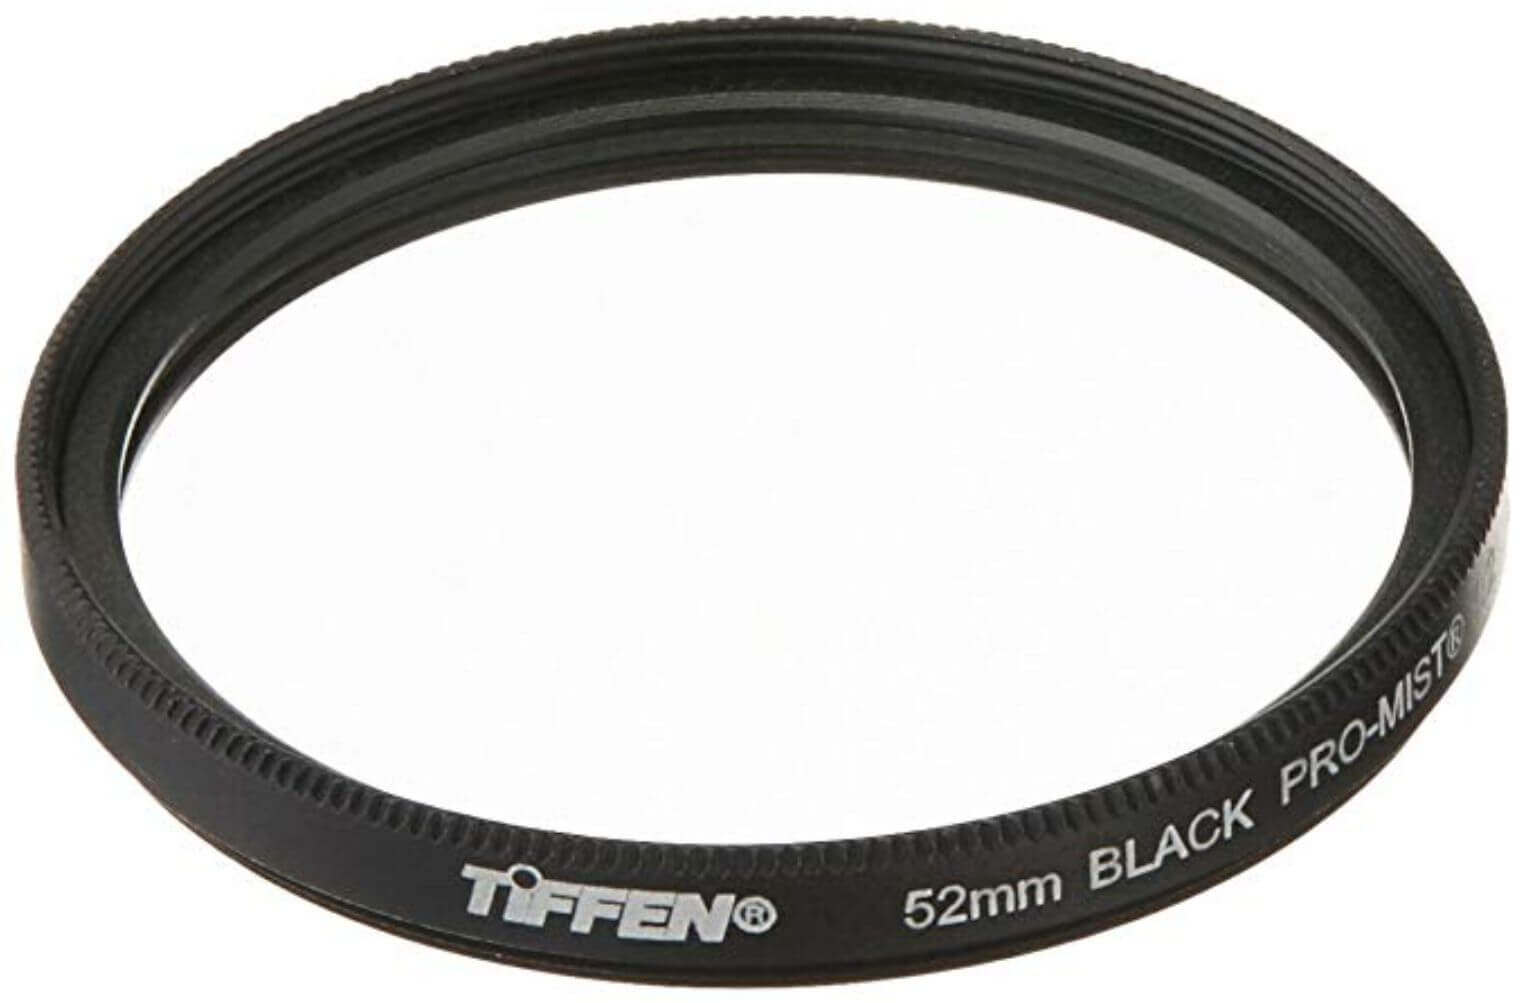 Tiffen 52BPM12 52mm Black Pro-Mist 1/2 Filter